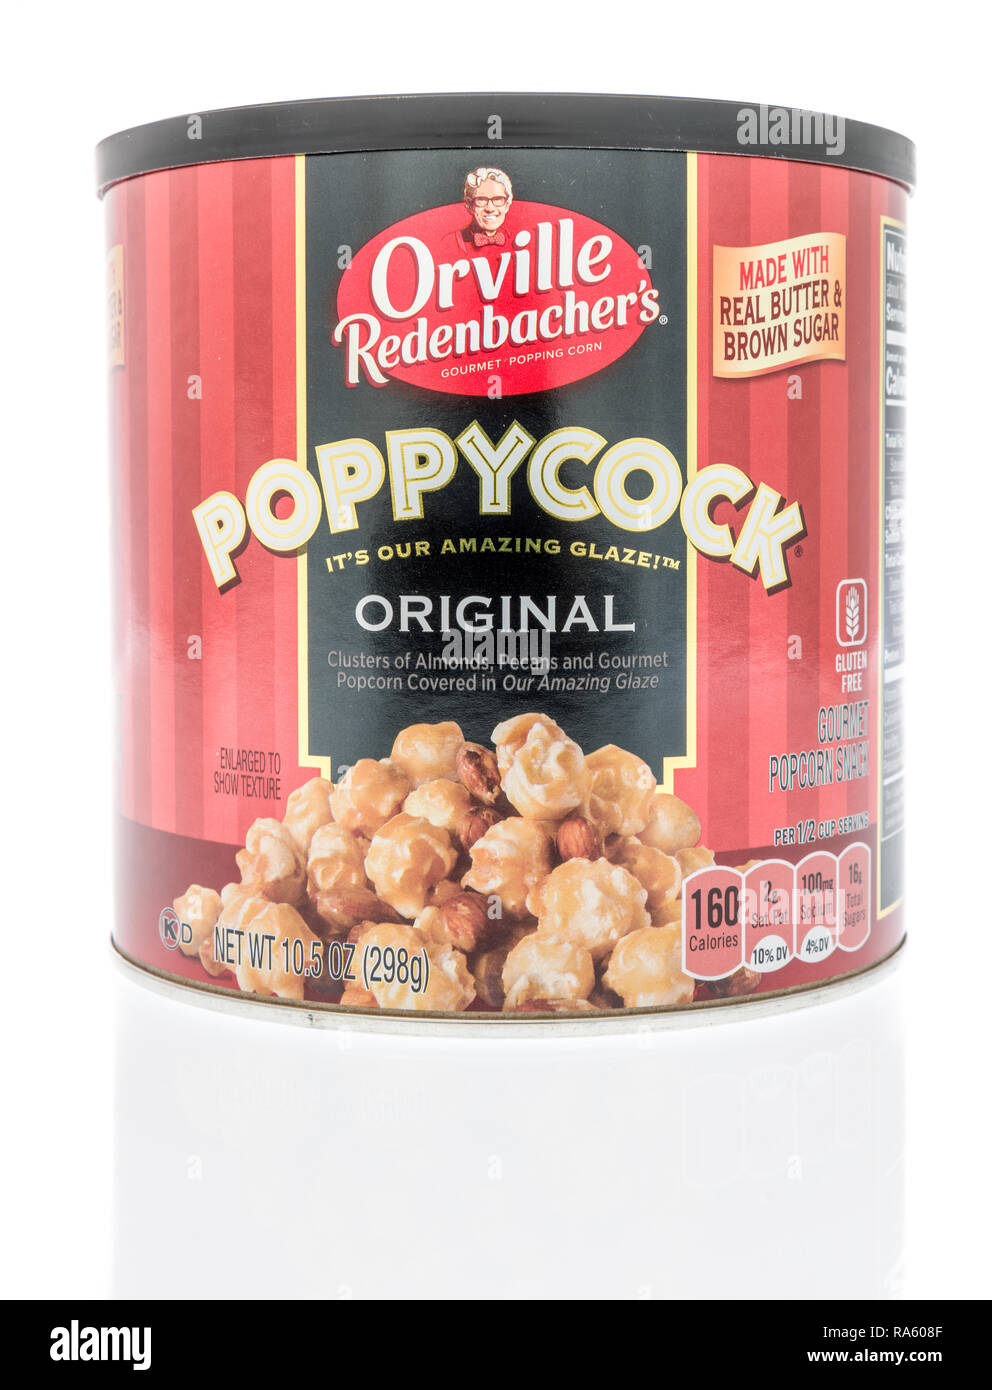 Winneconne, WI - 30 December 2018: A package of Orville Redenbachers poppycock on an isolated background. Stock Photo